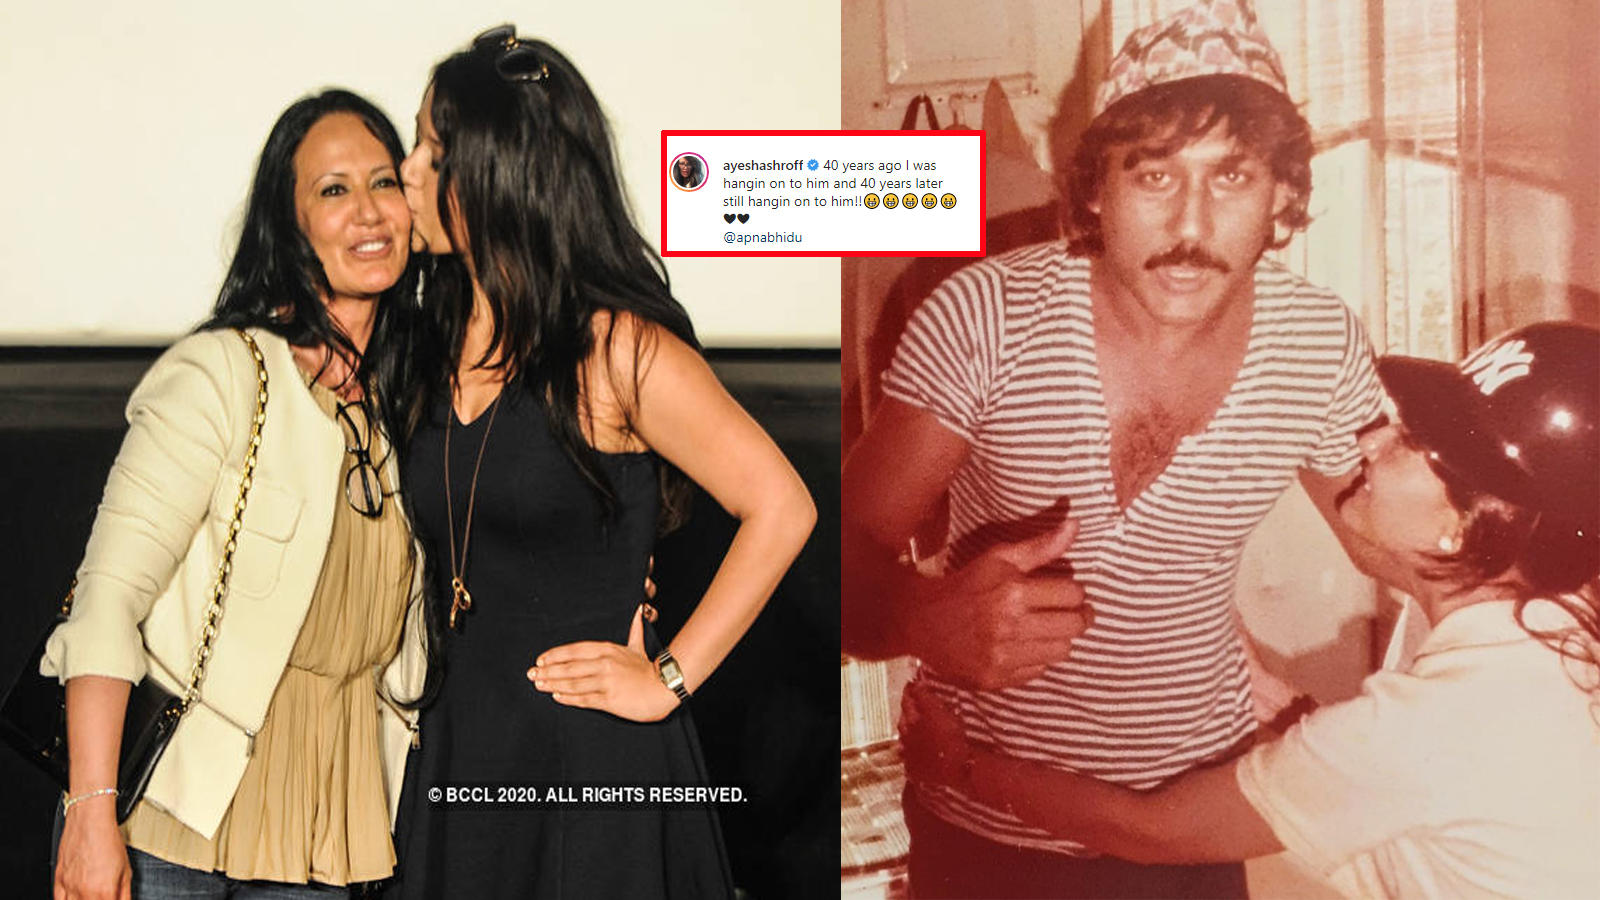 ayesha-shroffs-adorable-post-for-hubby-jackie-shroff-is-heart-touching-krishna-shroff-drops-a-cute-comment